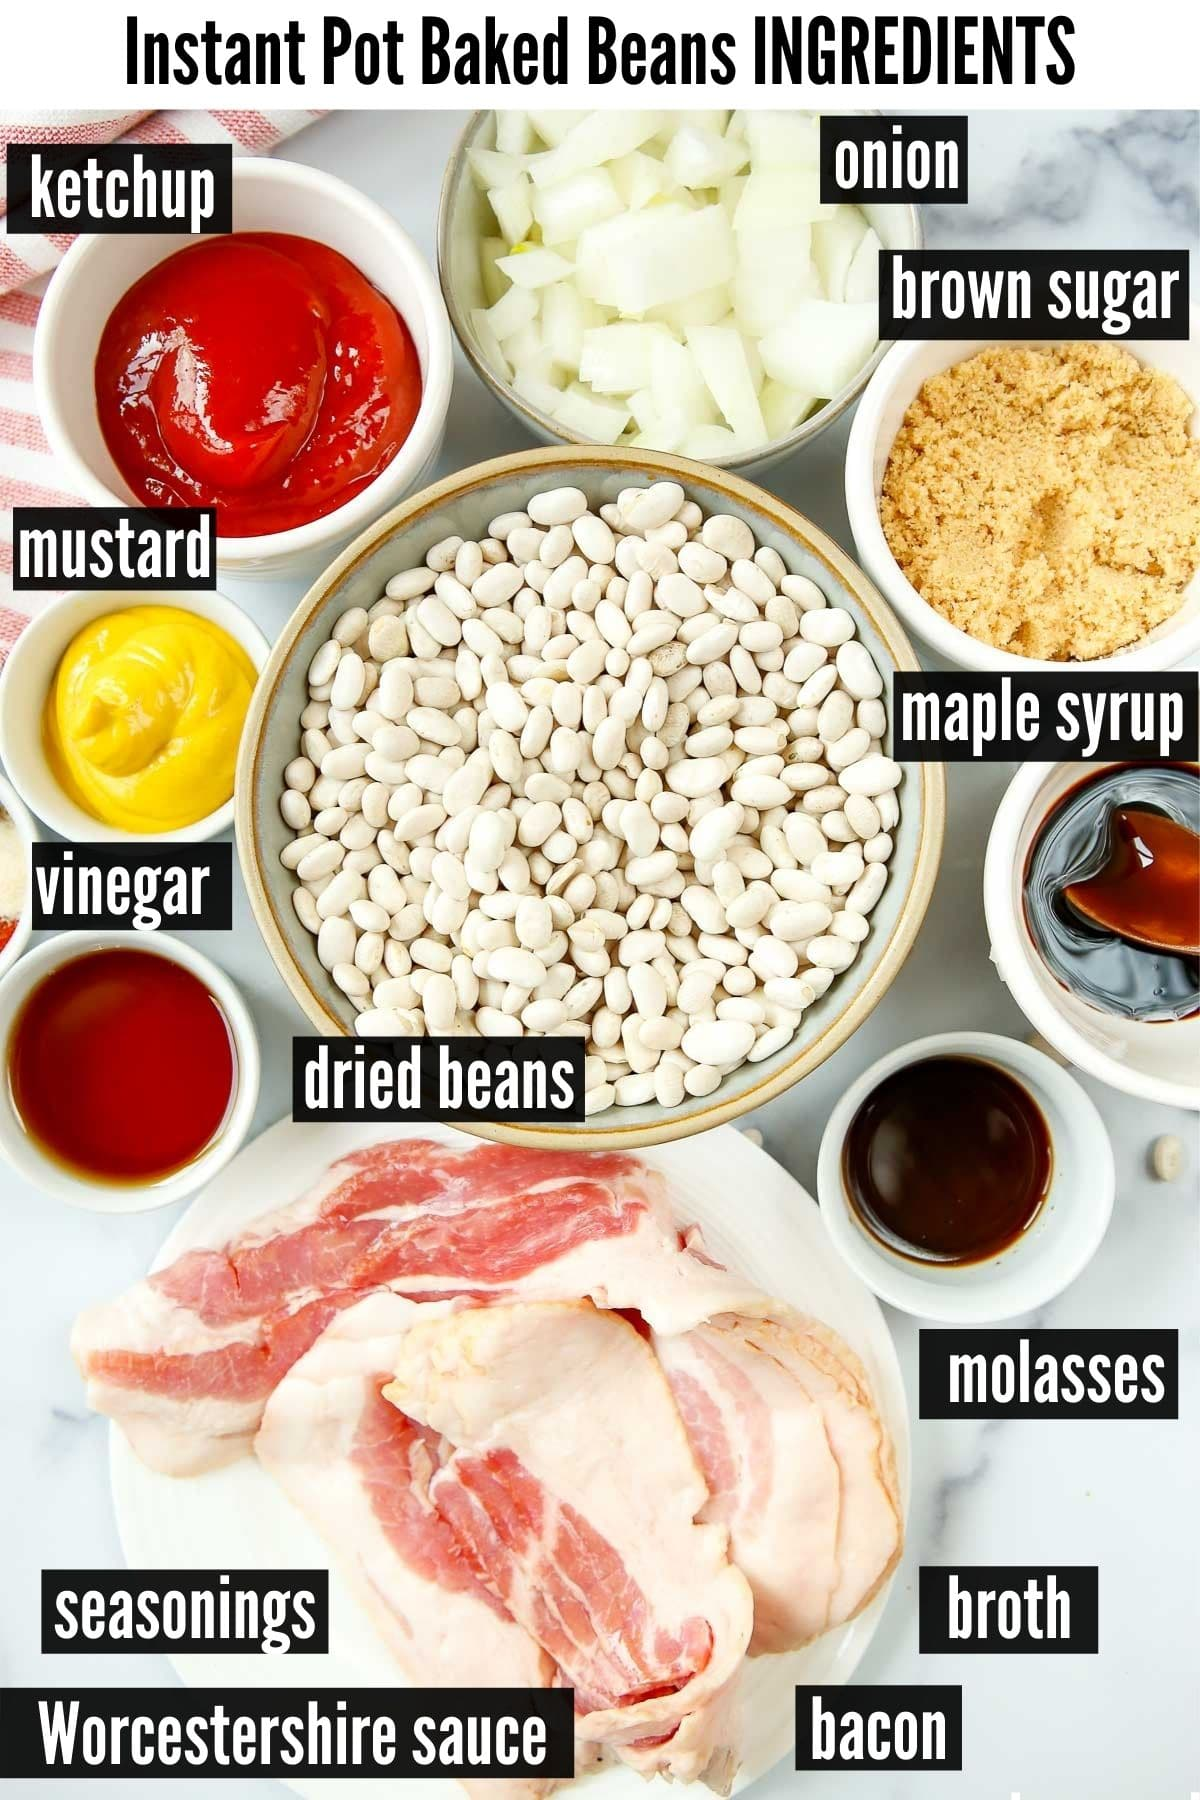 instant pot baked beans ingredients